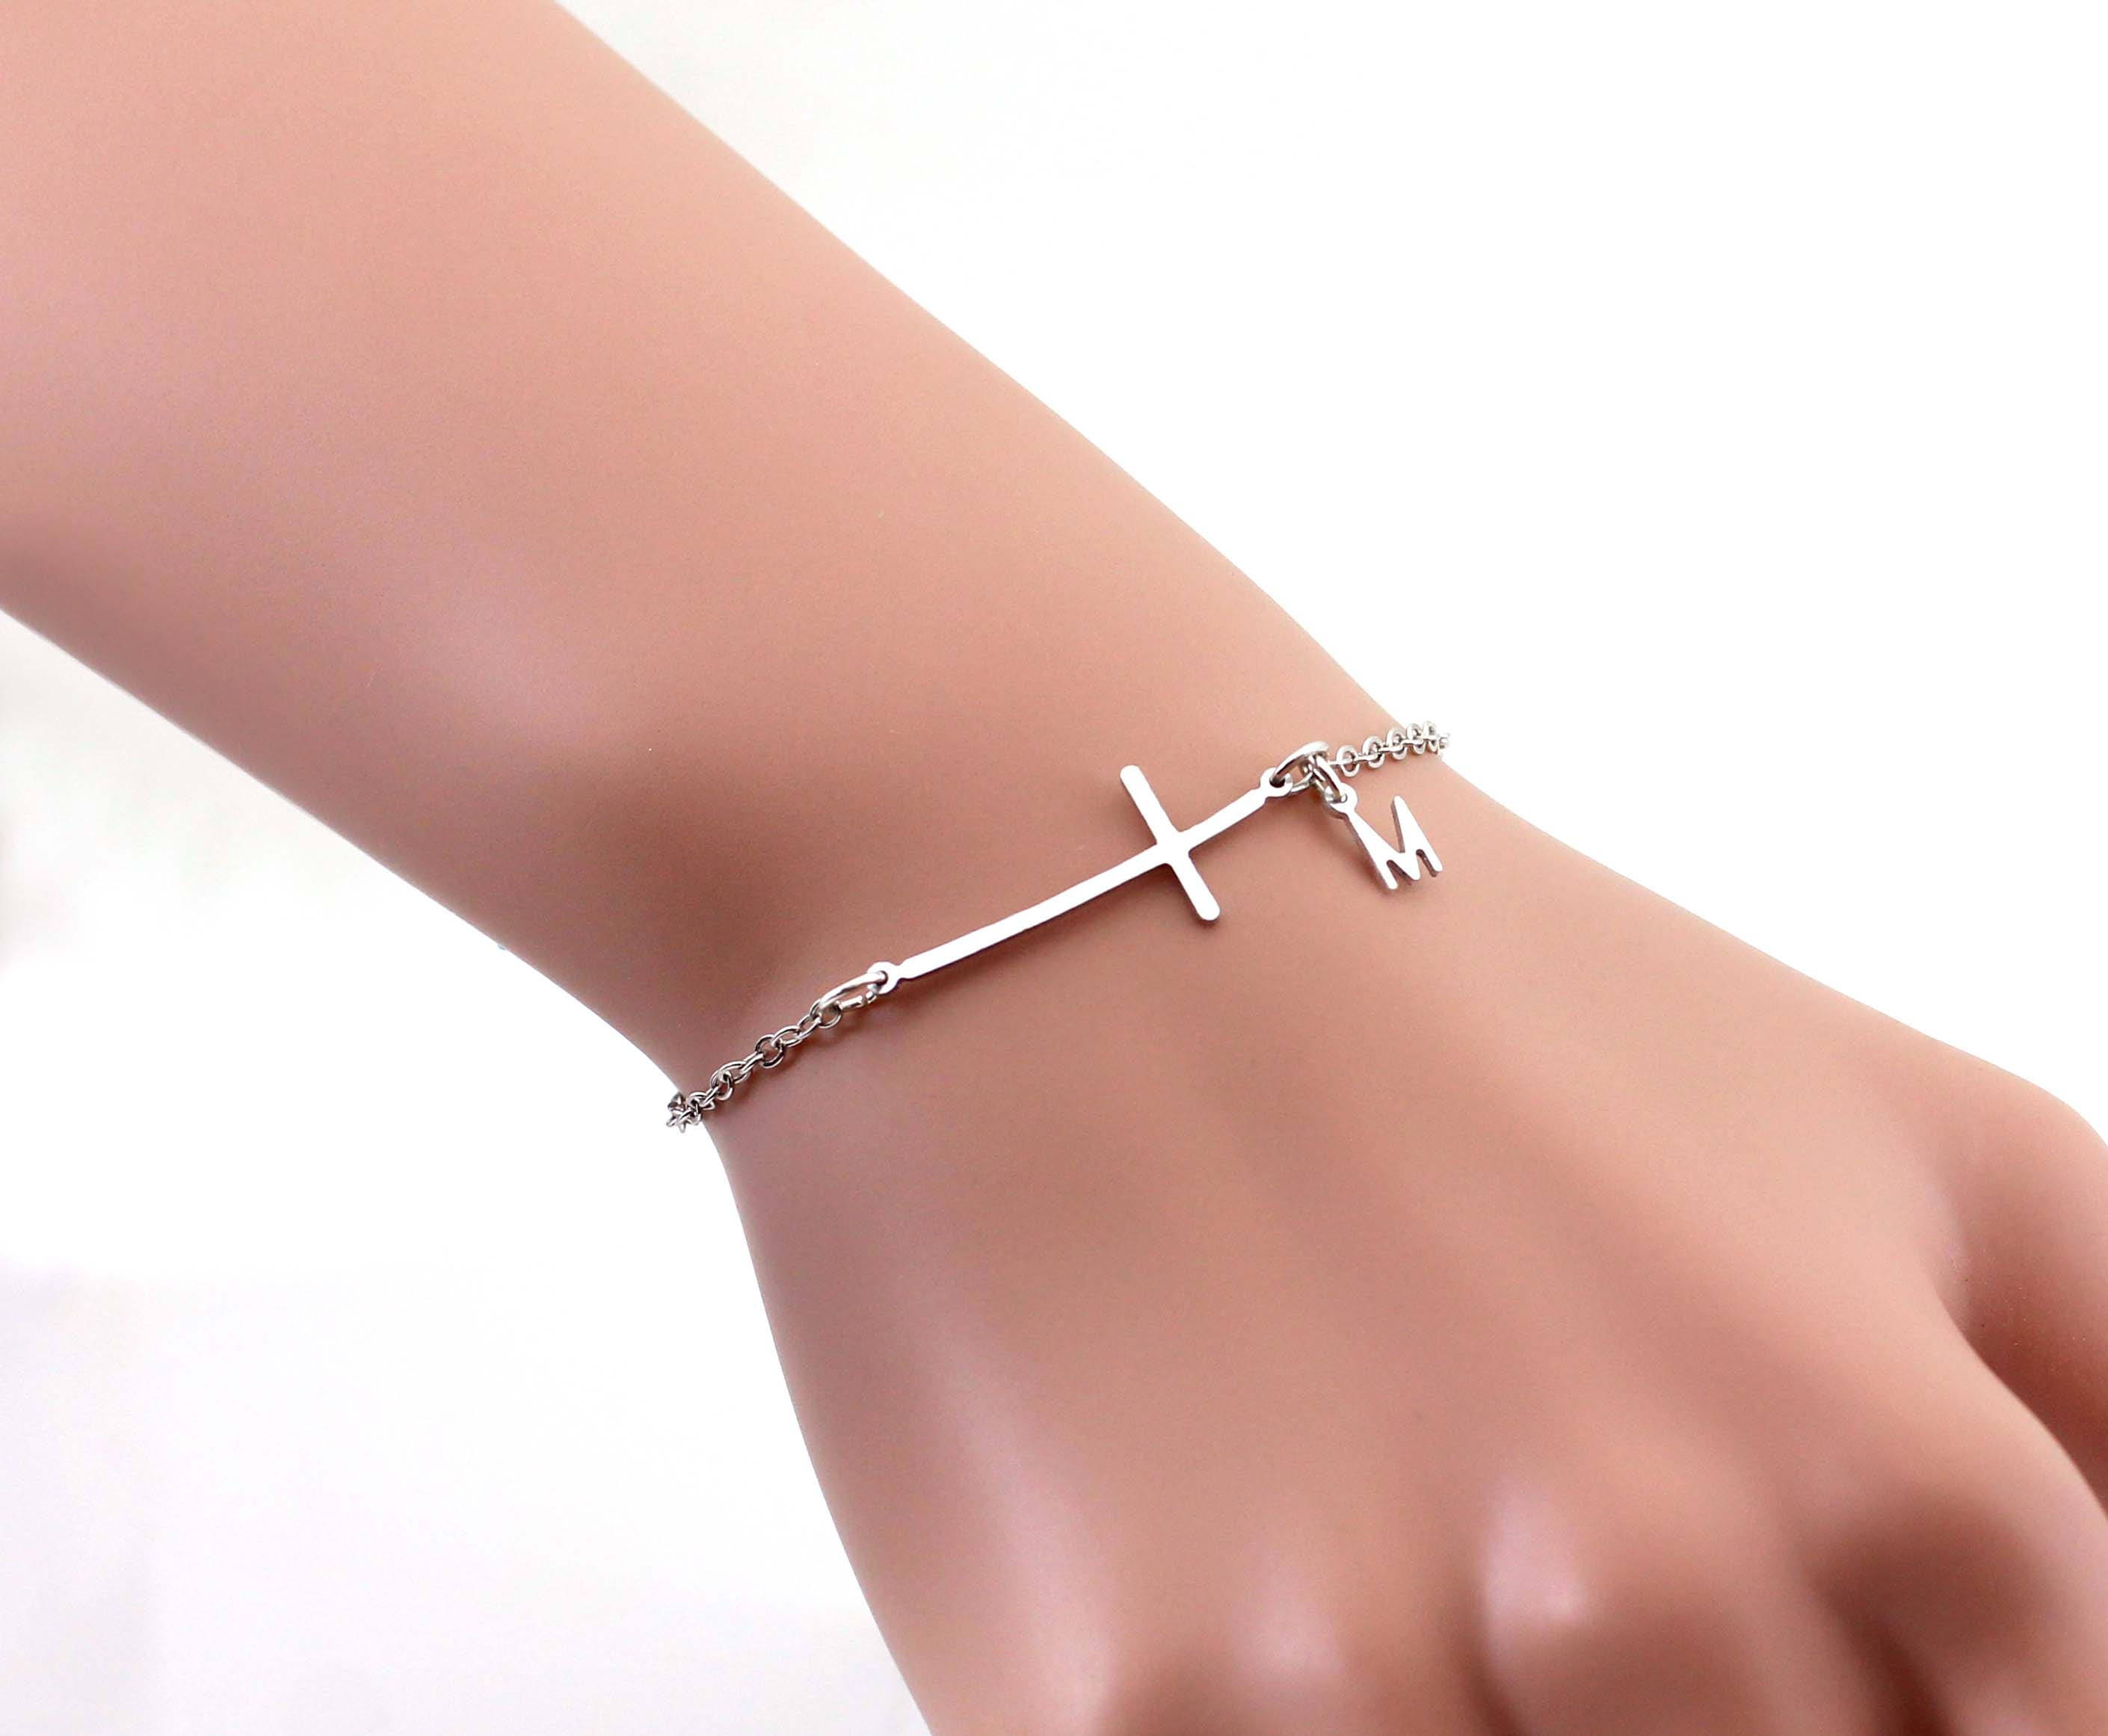 horizontal zealand new cross silvermoon silver bracelet